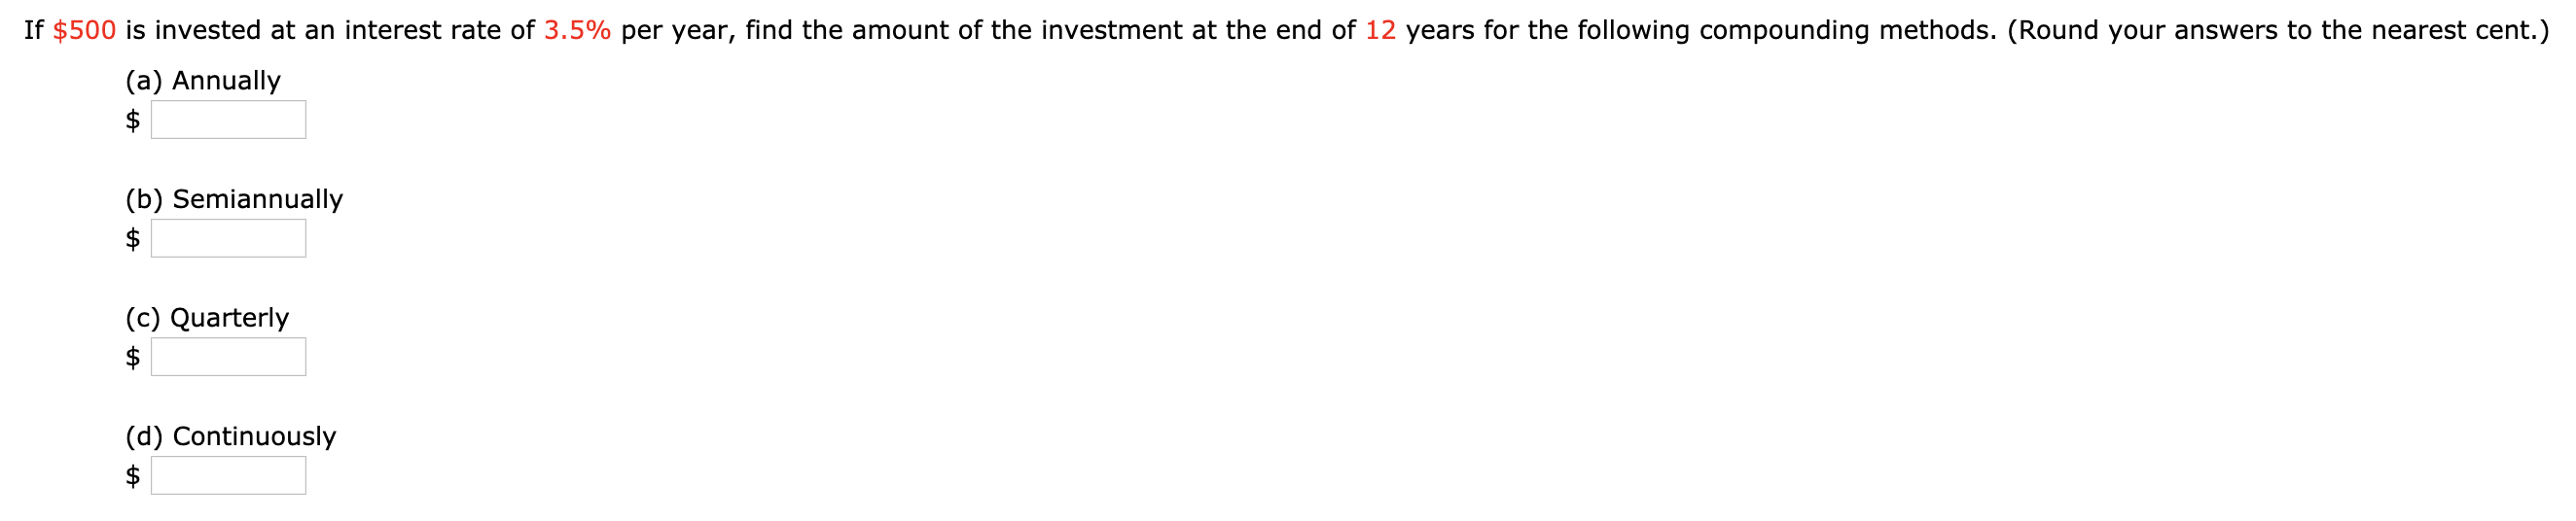 If $500 is invested at an interest rate of 3.5% per year, find the amount of the investment at the end of 12 years for the following compounding methods. (Round your answers to the nearest cent.) (a) Annually (b) Semiannually $ (c) Quarterly (d) Continuously